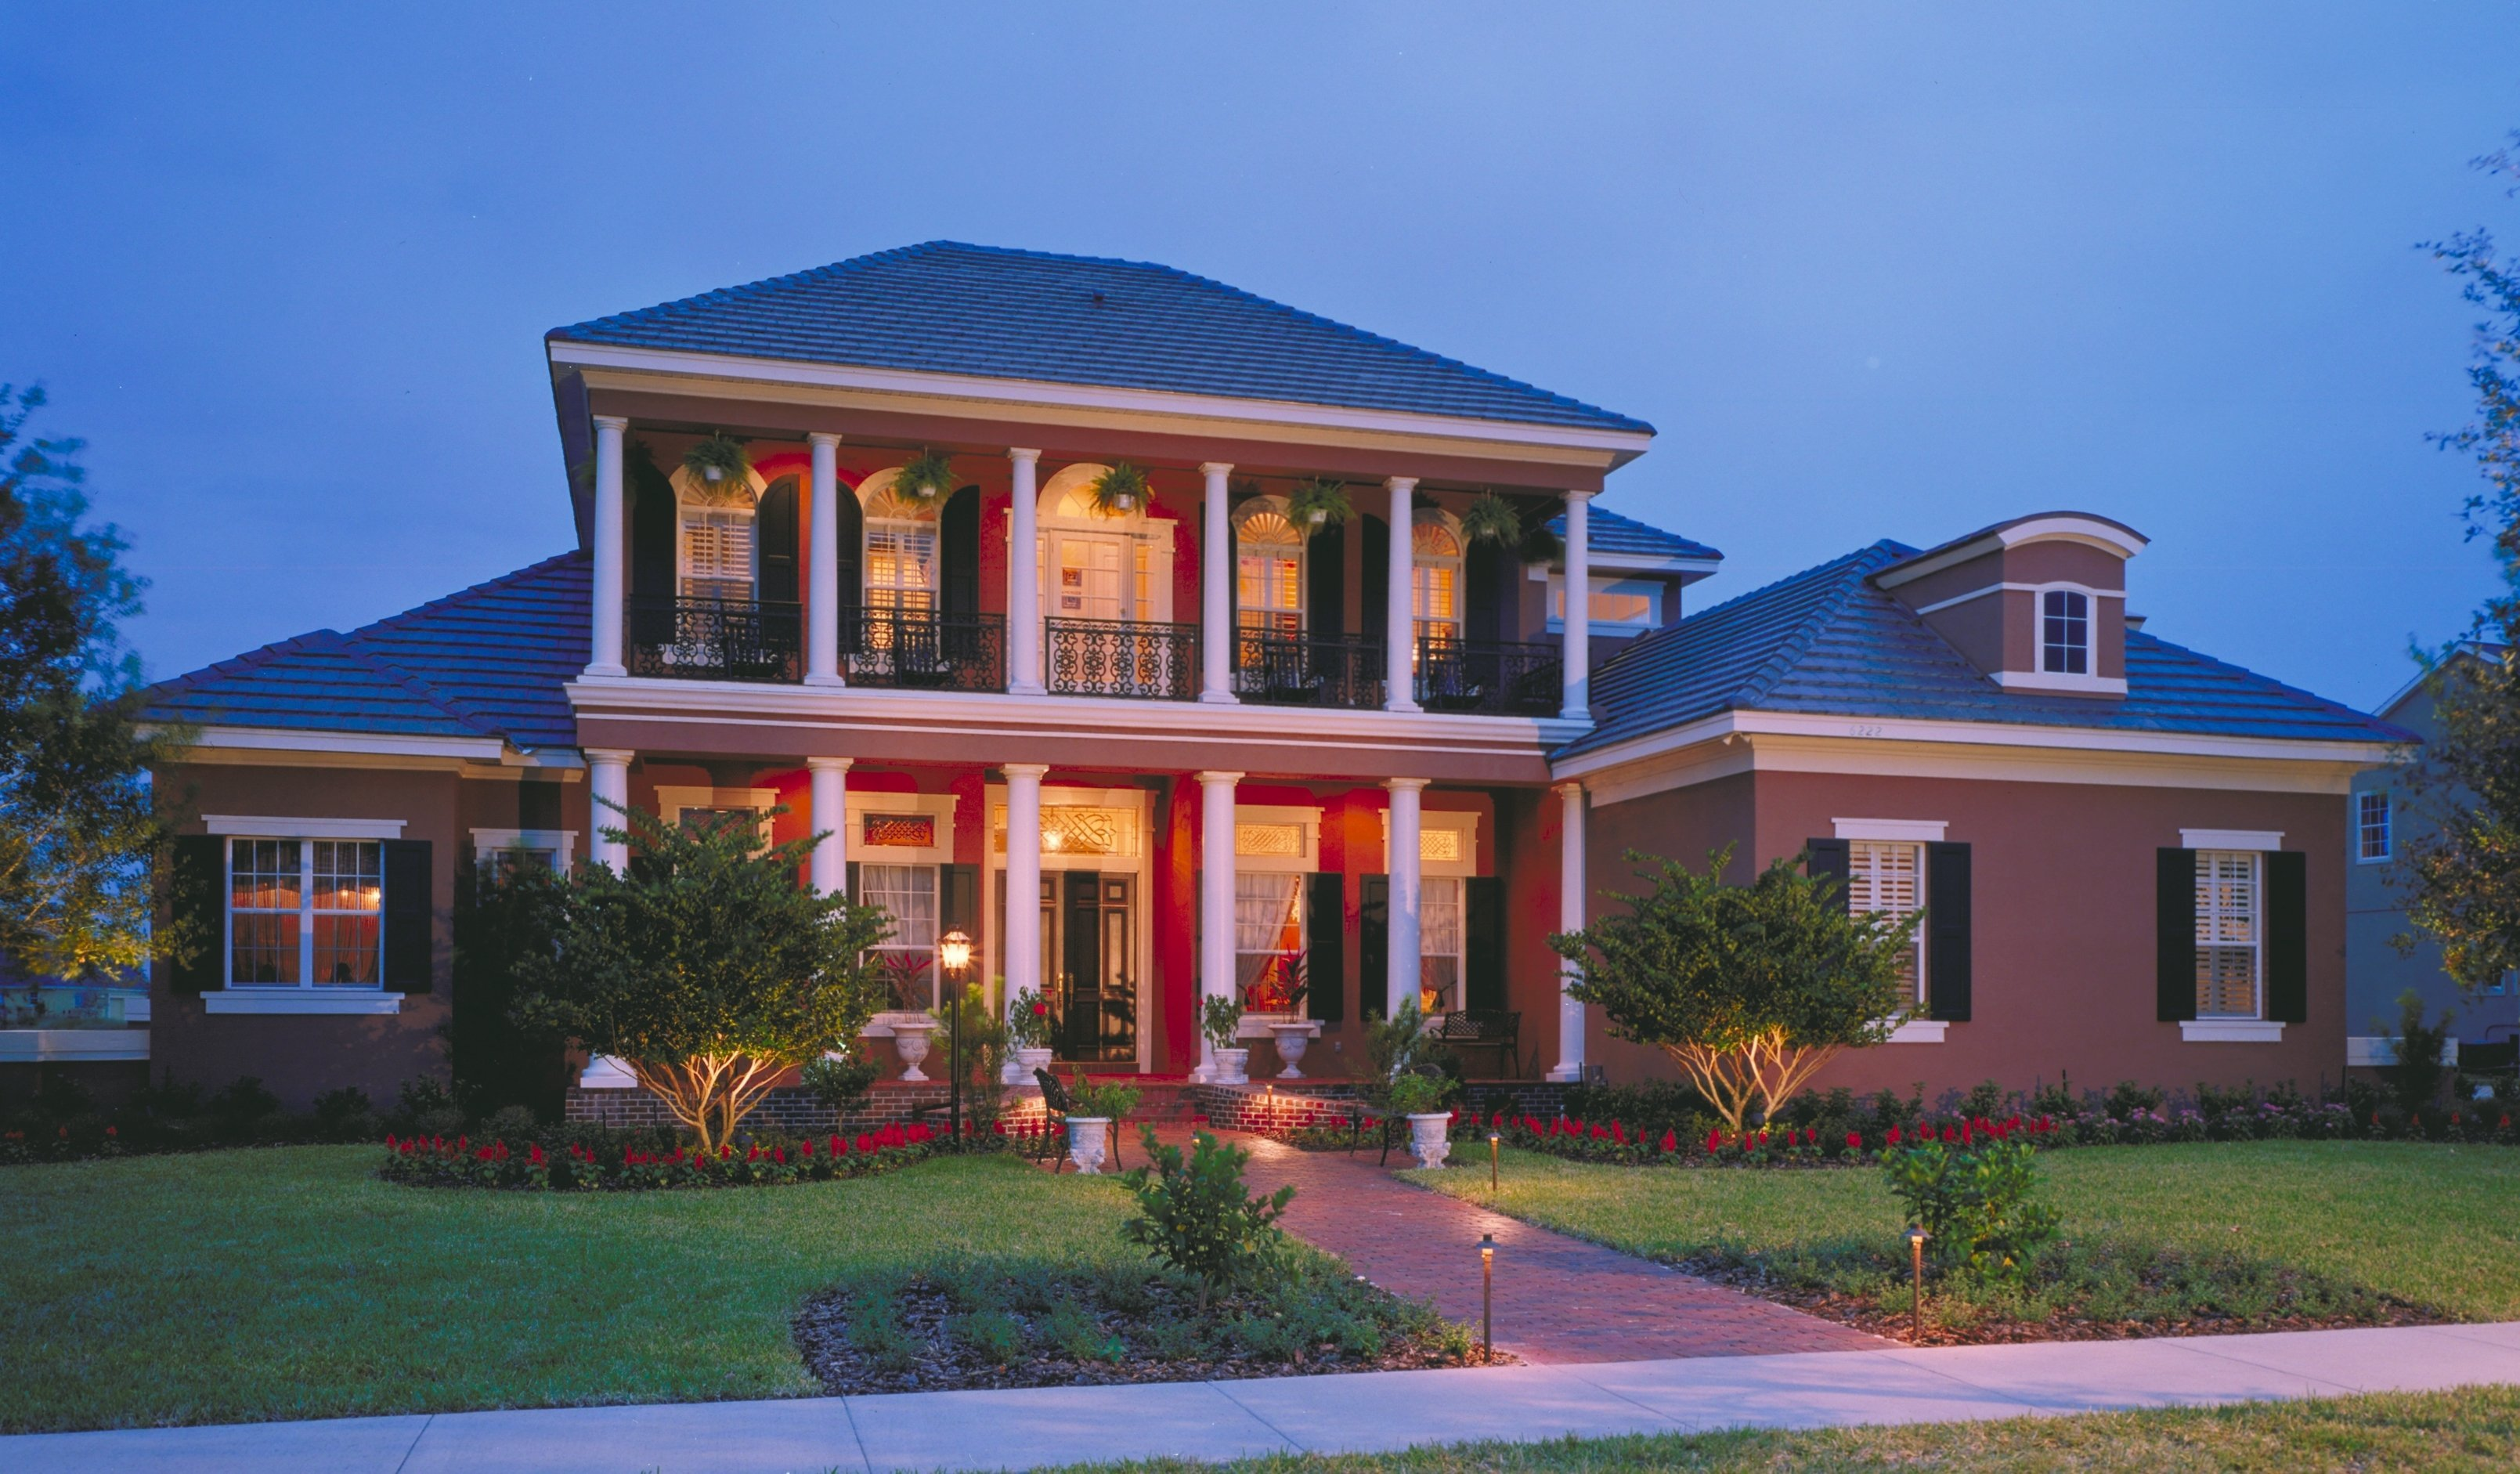 Southern Colonial With Two Story Balcony 83382cl Architectural Designs House Plans